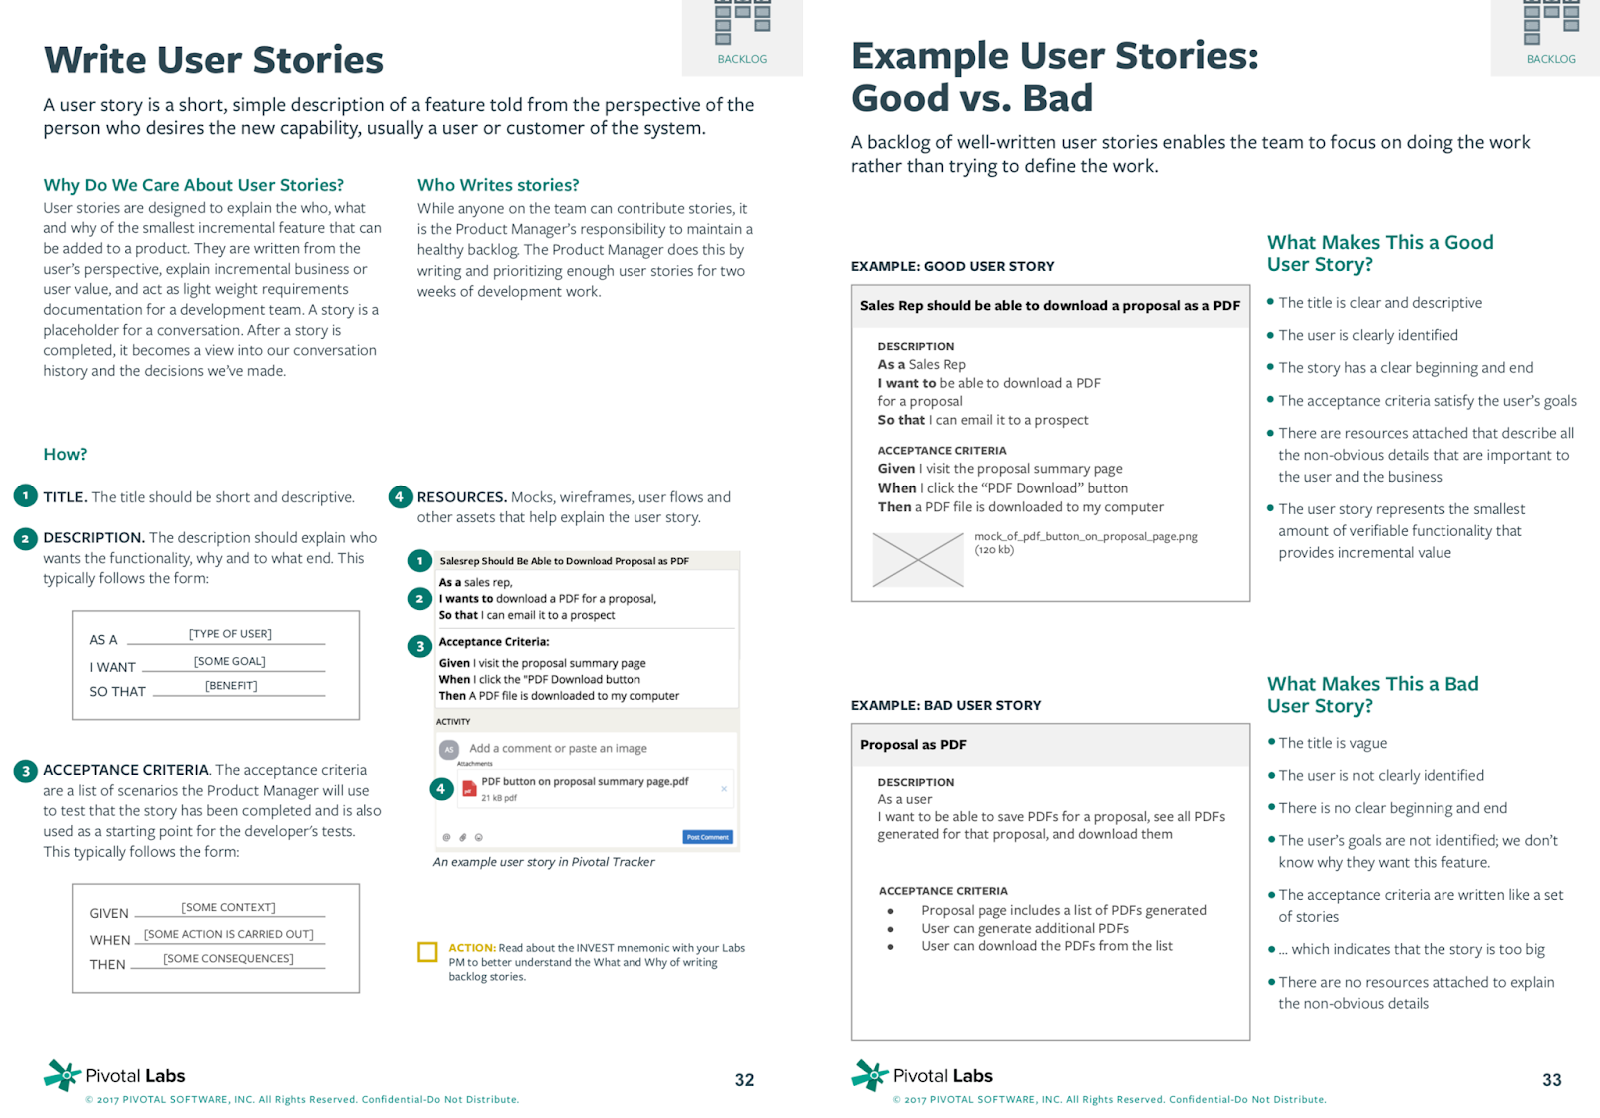 All Things Cloud: How To Write Good User Stories - What makes a